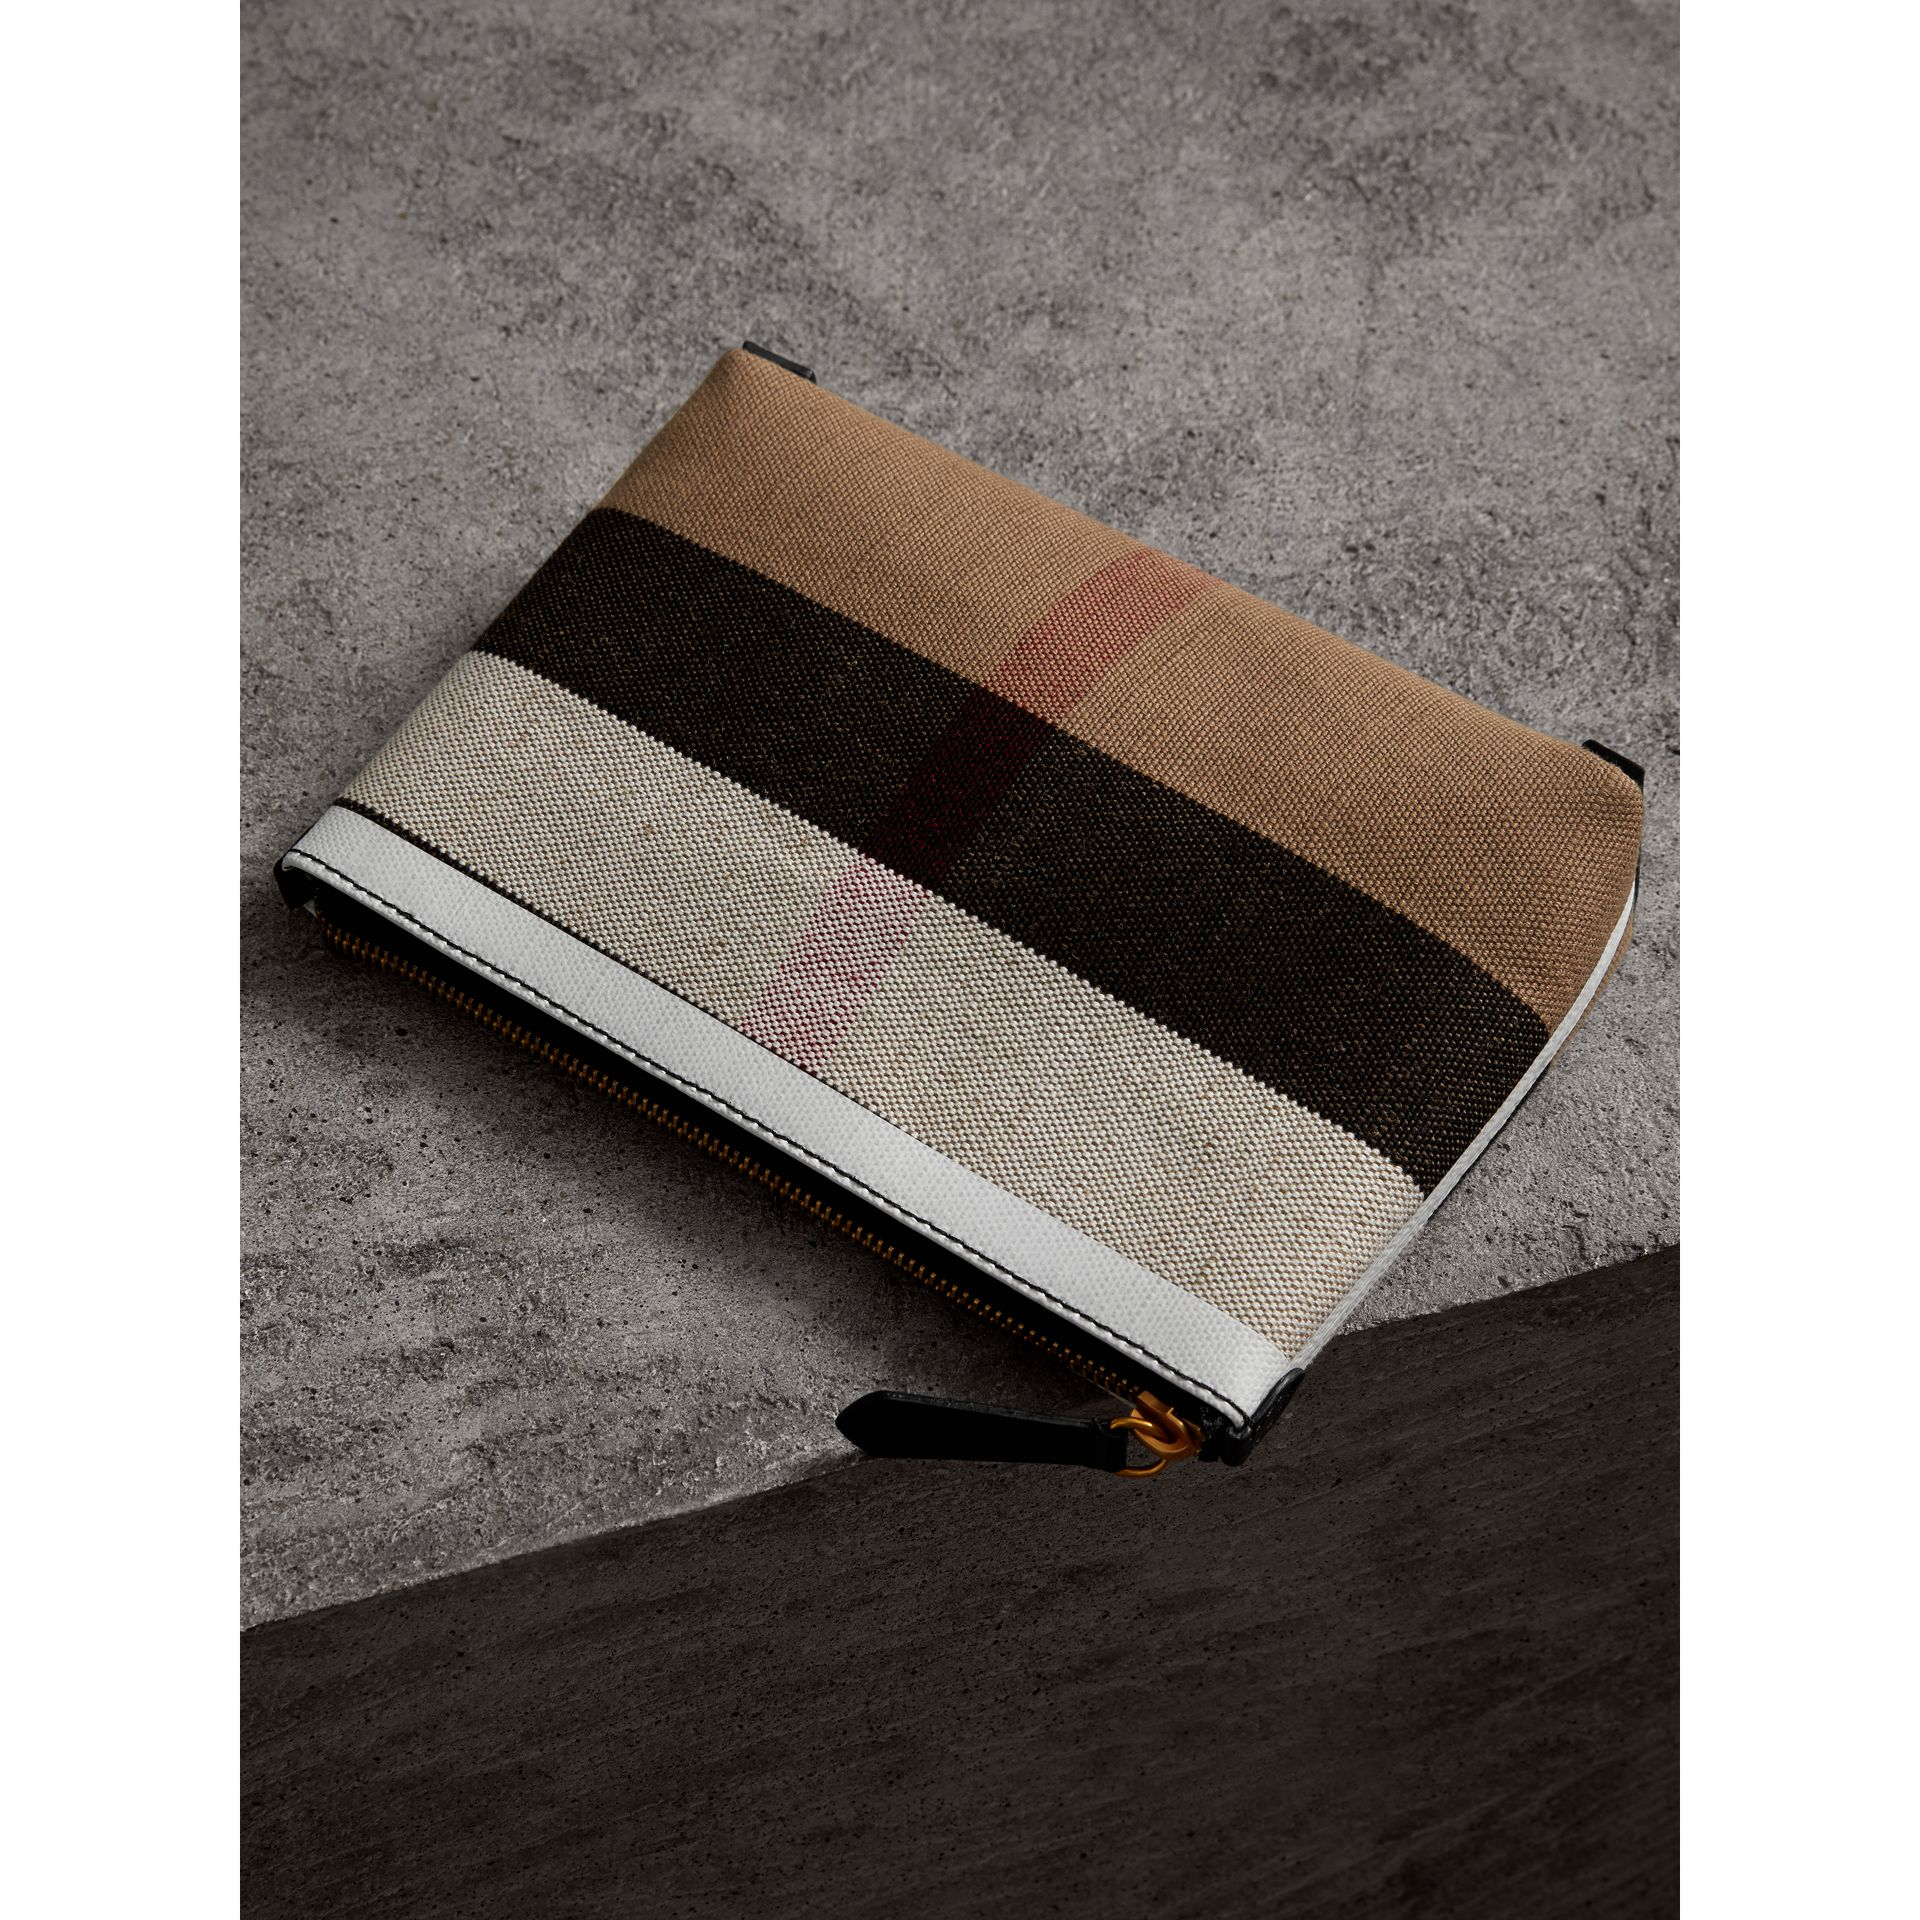 Medium Canvas Check and Leather Zip Pouch in Black/white - Women | Burberry - gallery image 2